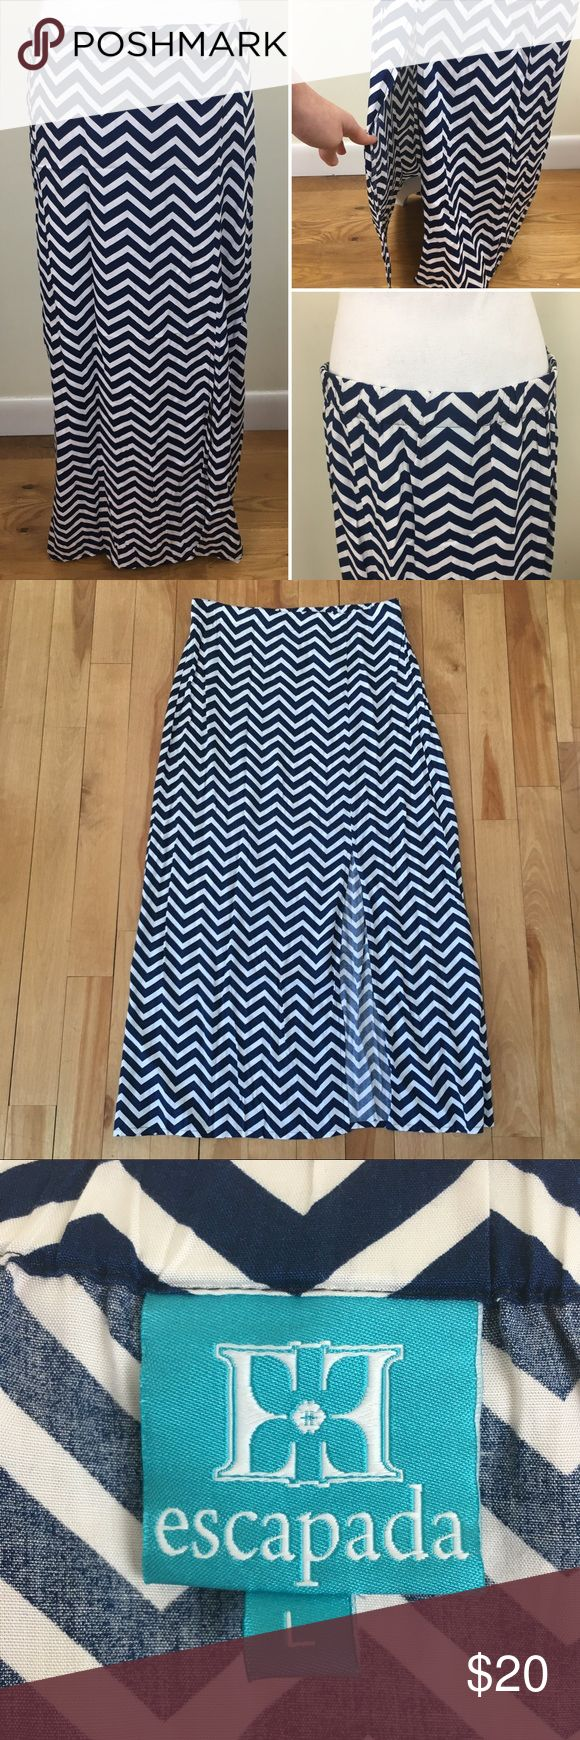 "Escapada Blue and White Chevron Maxi skirt This navy blue and white maxi skirt from Escapada features an elastic waist in the back and a slit in the front side. Size: Large. Waist: 17"" - 19"". Length: 39"". Escapada Skirts Maxi"